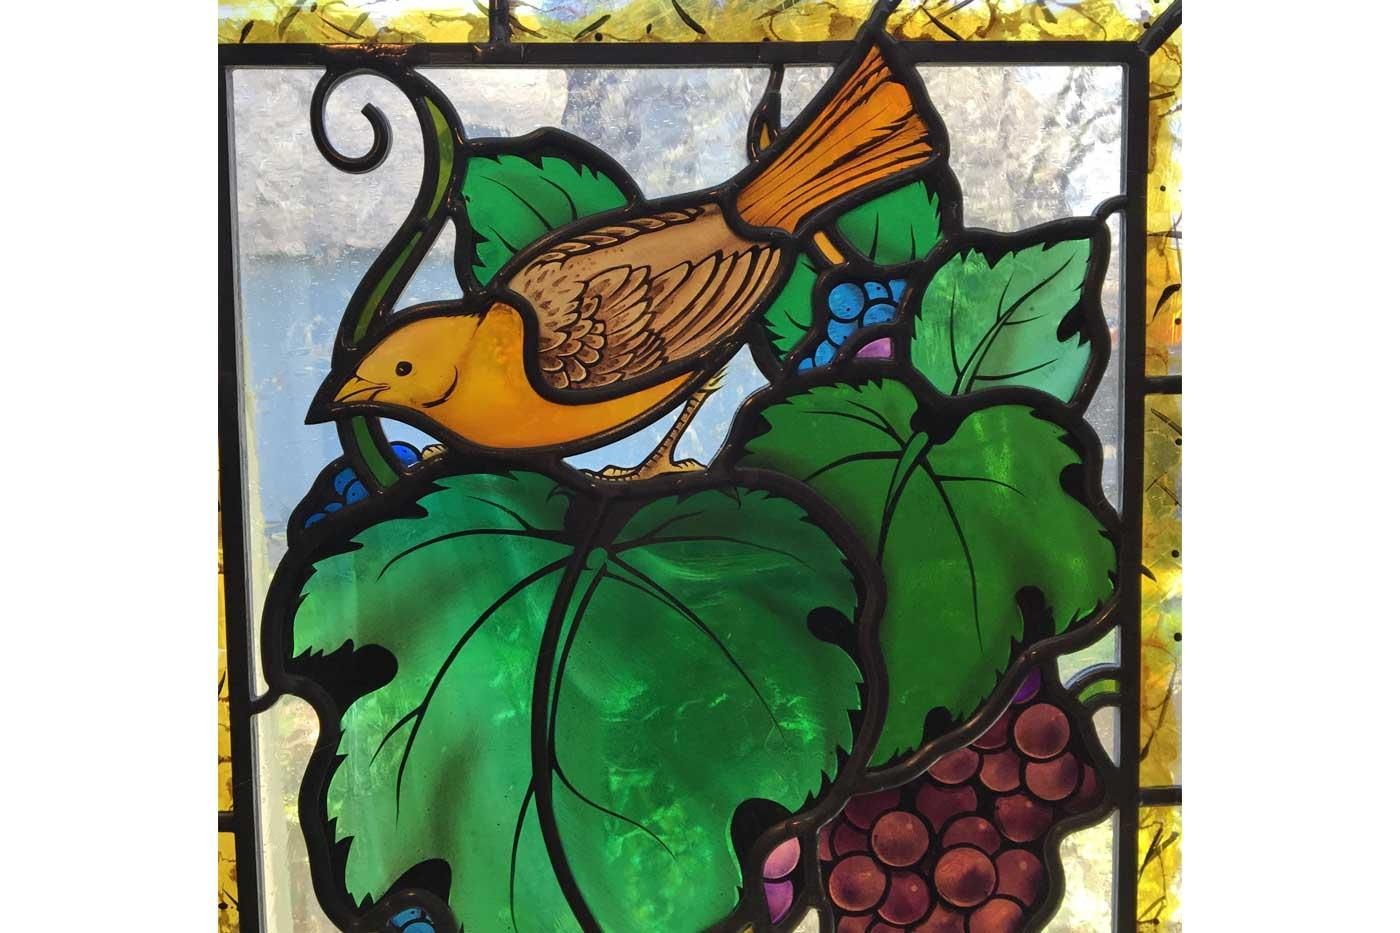 Stained glass painted by Indre McCraw beautifully accents Wolff's work.